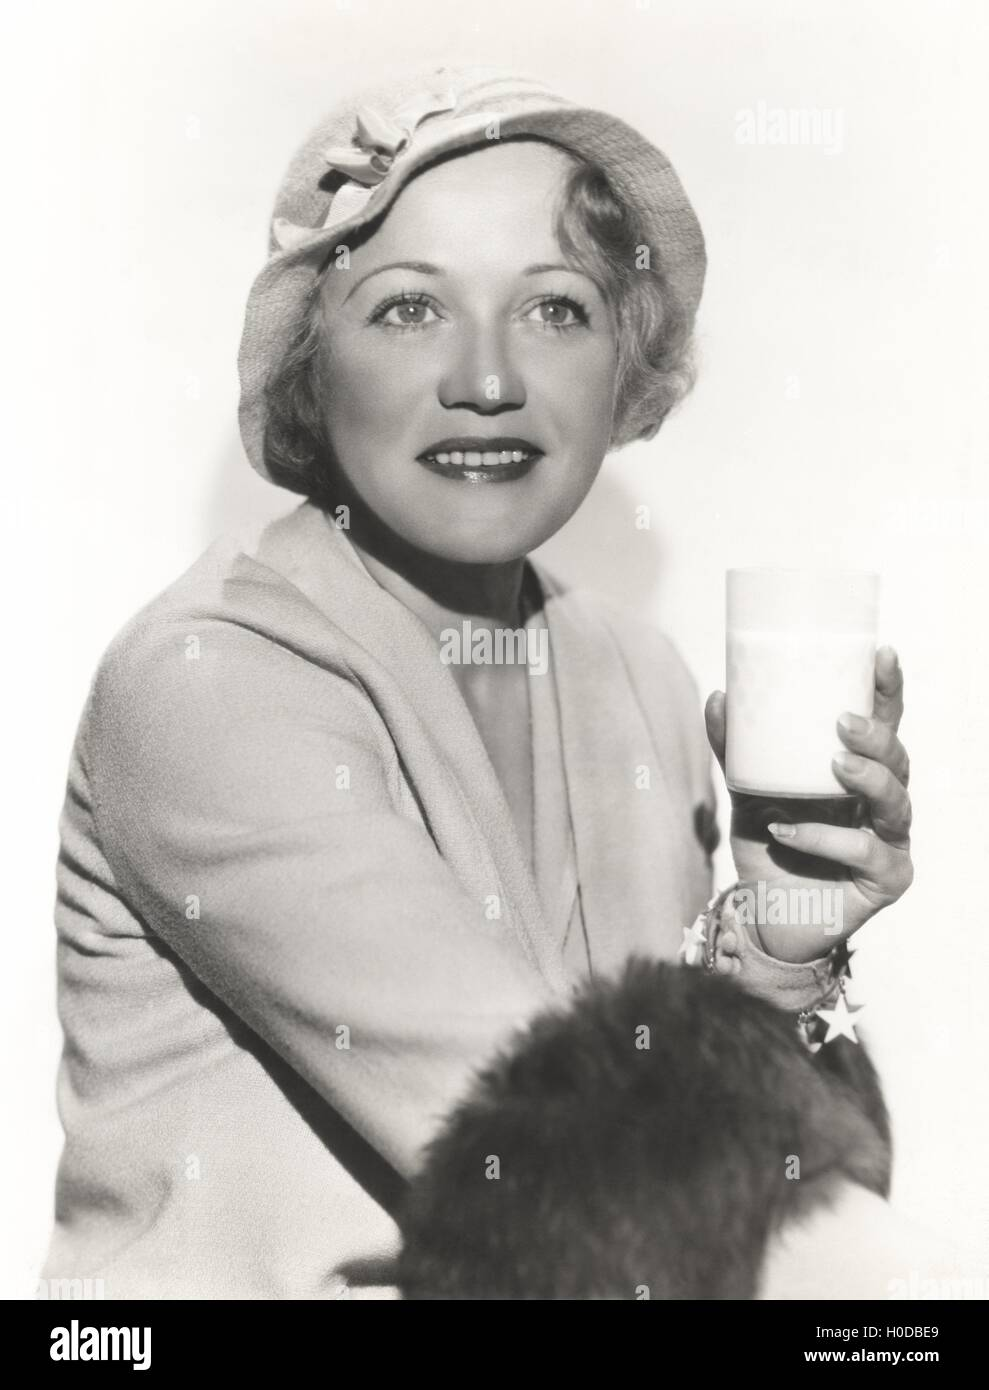 Woman in hat holding a glass of milk - Stock Image